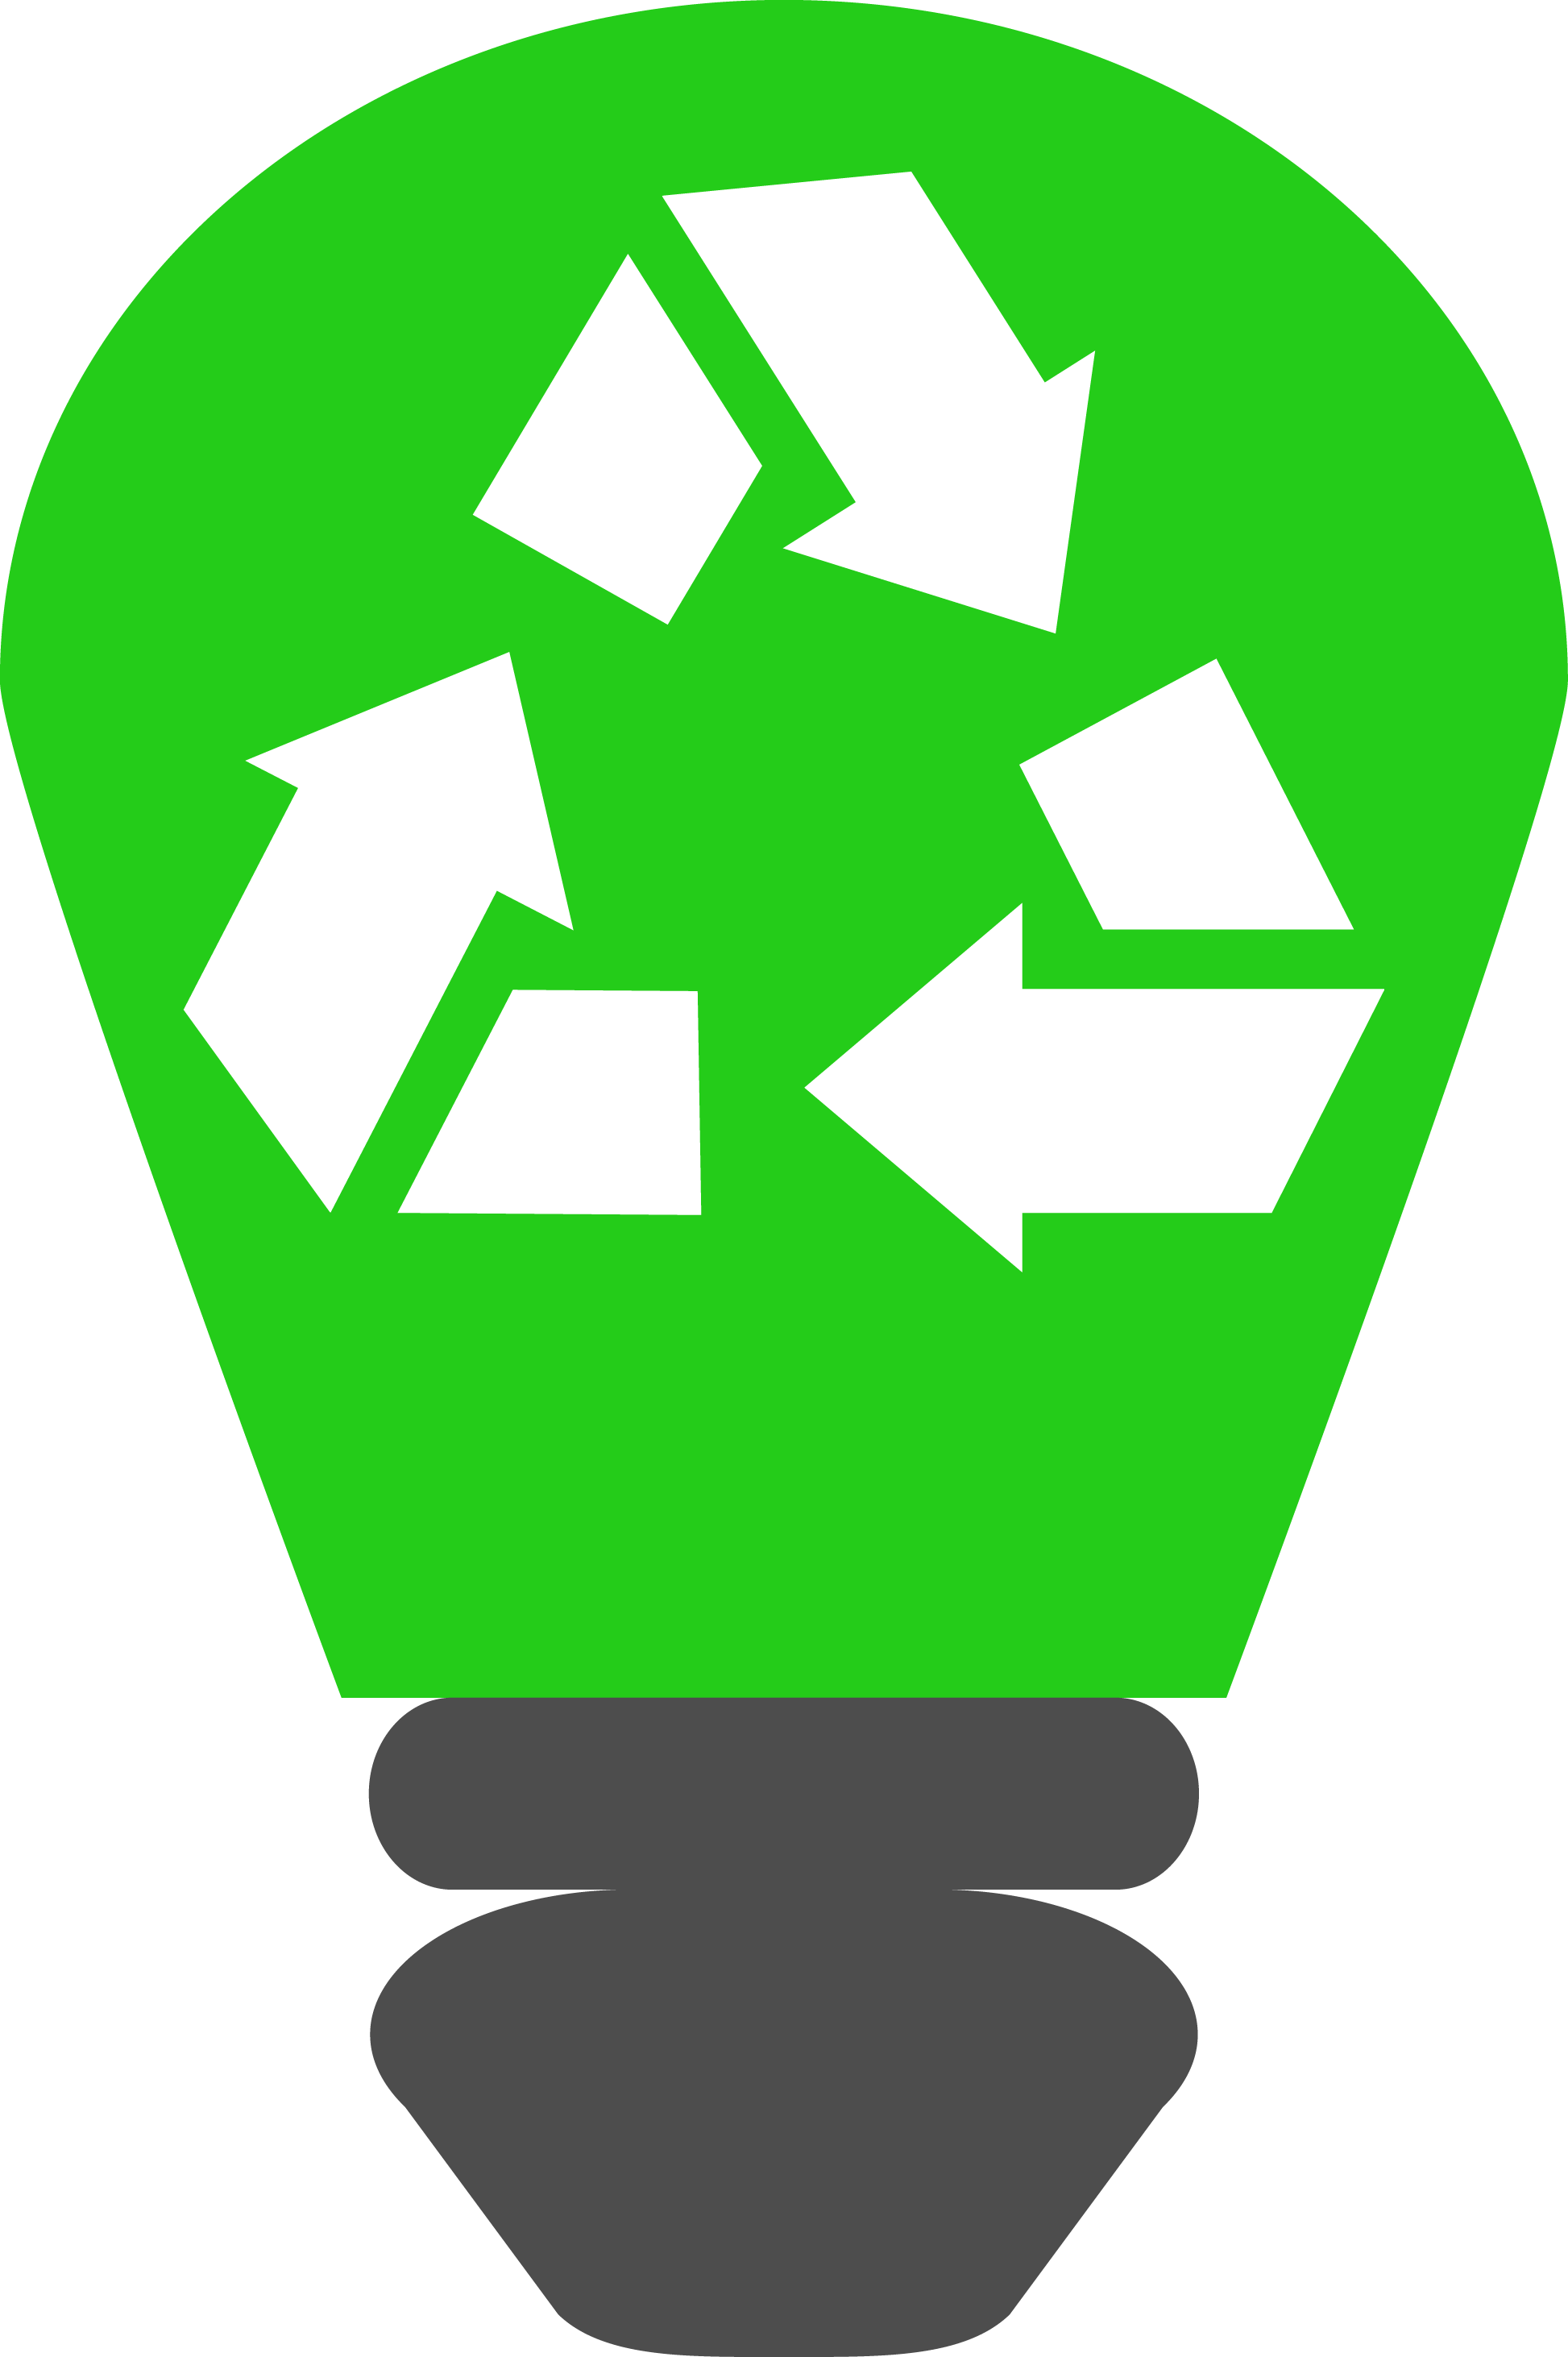 Renovation as a sustainable. Energy clipart effort